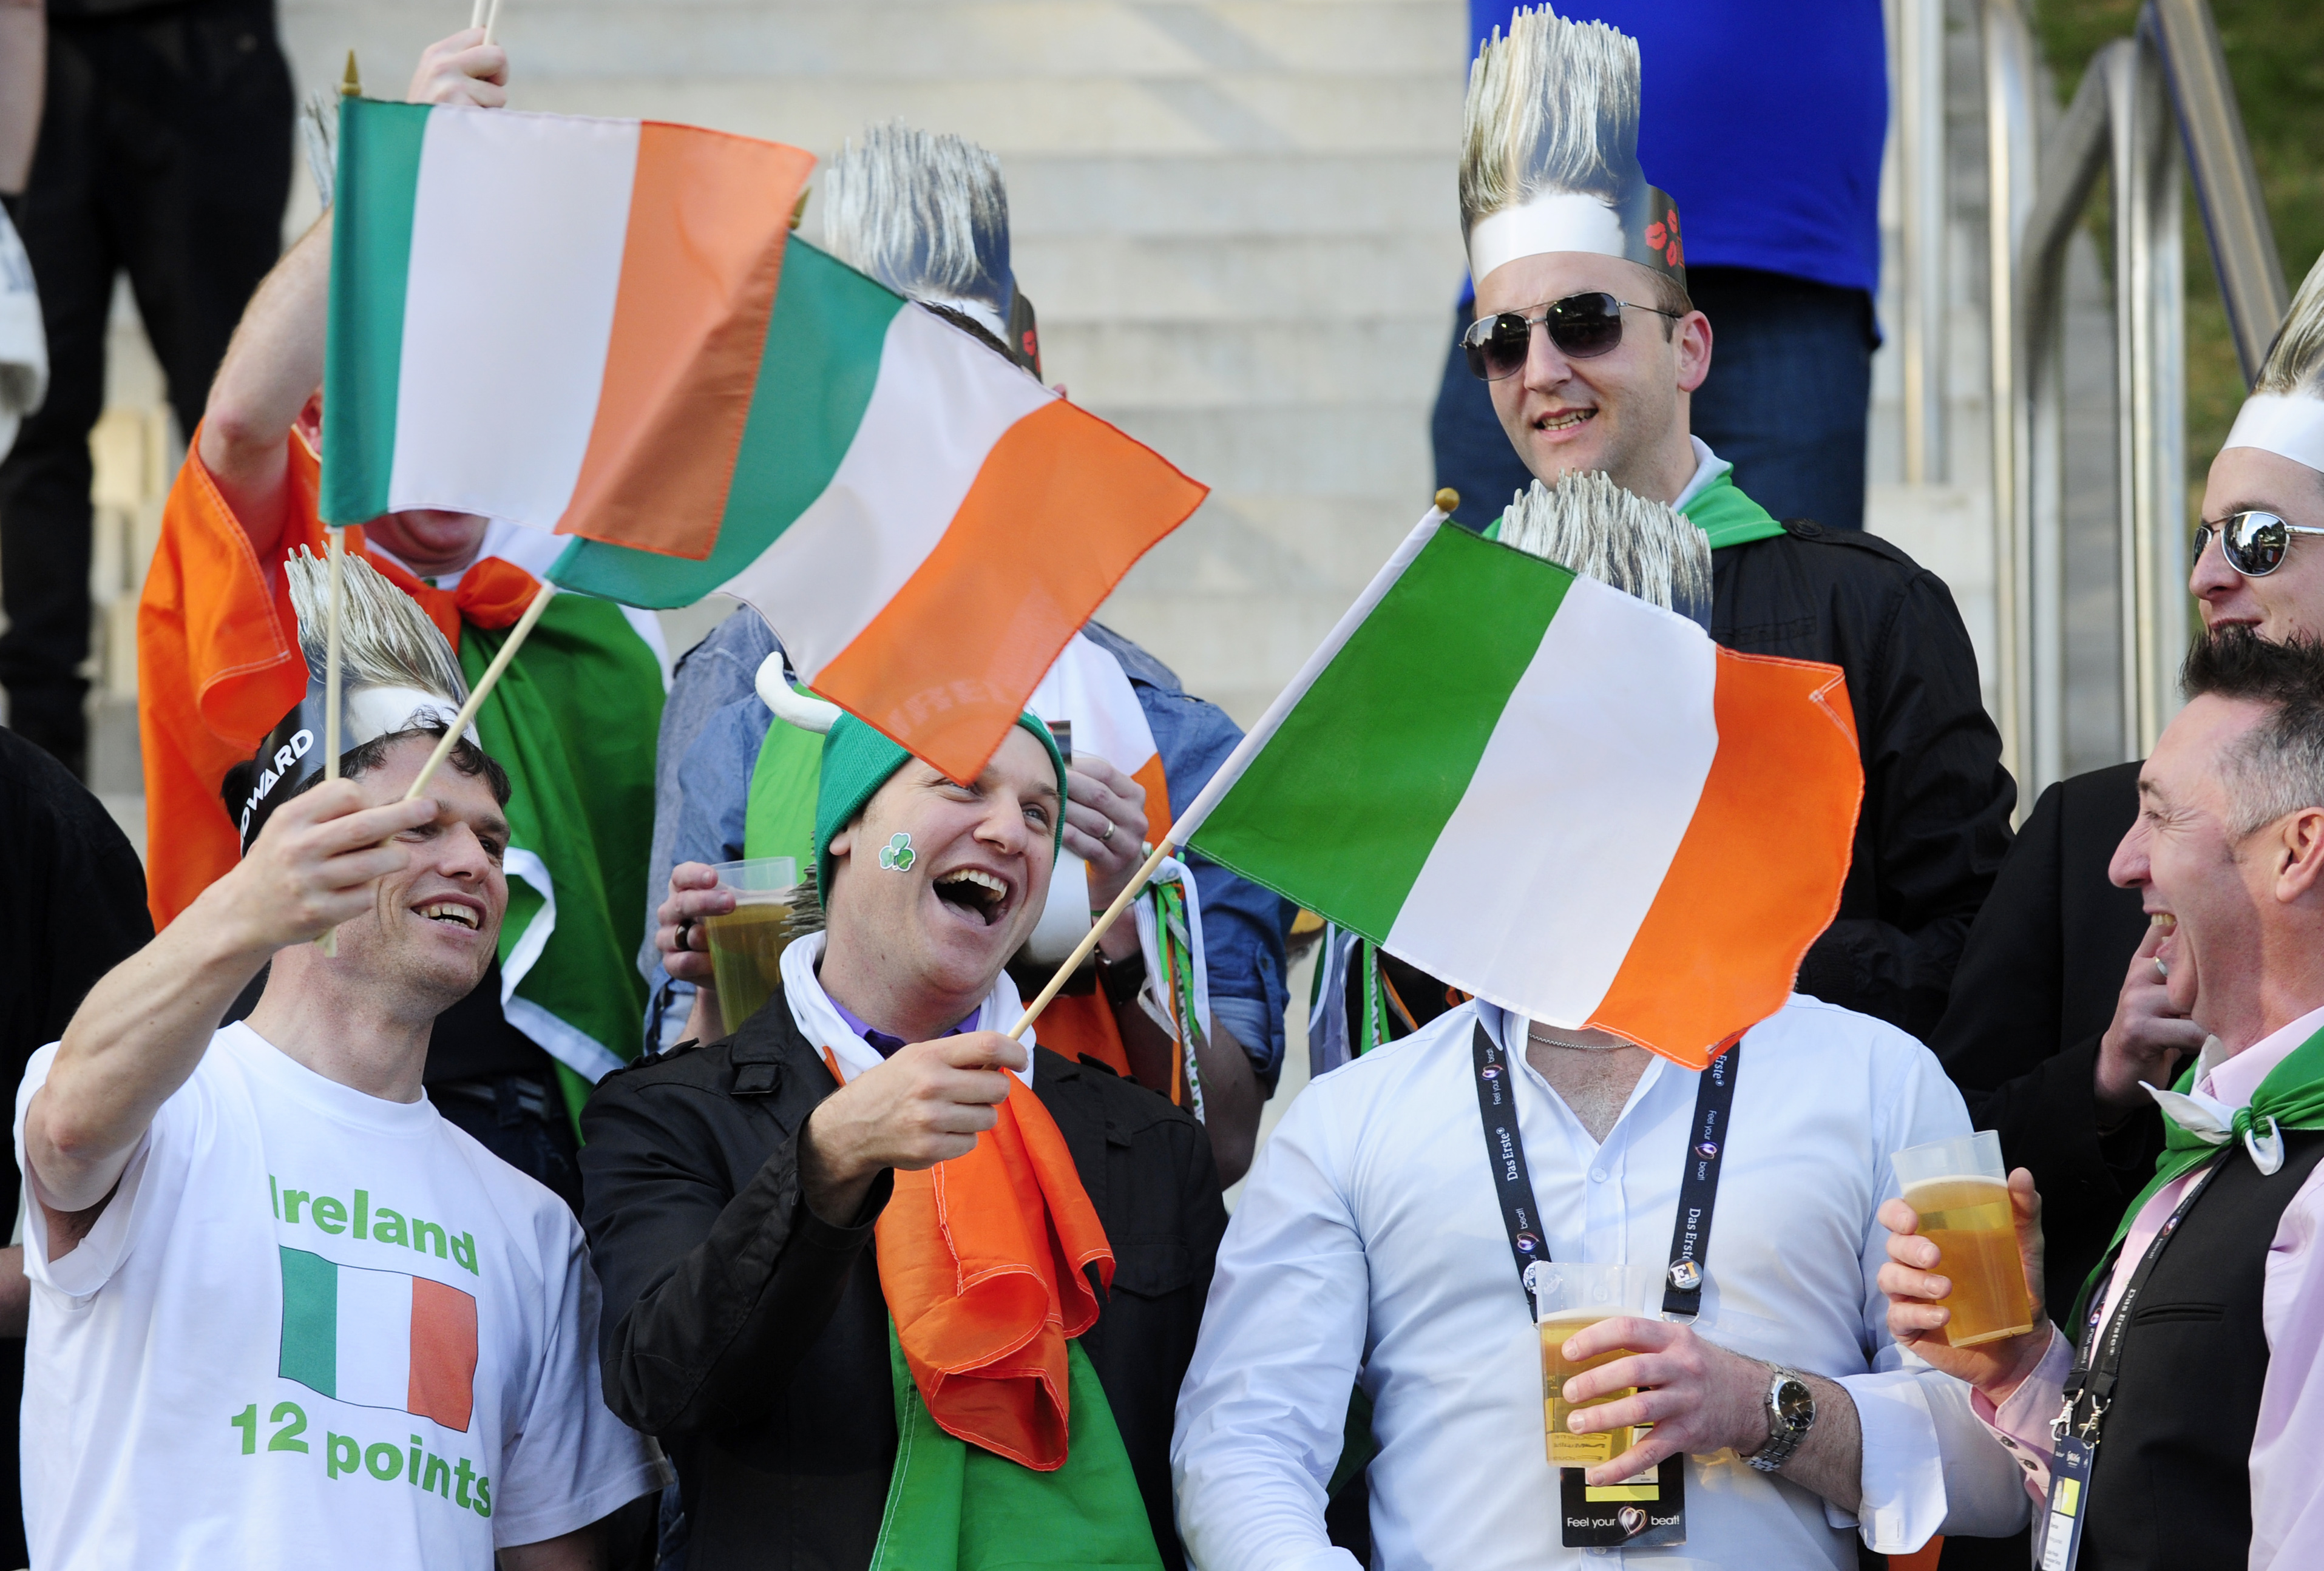 reland Supporters Cheer with their National Flags